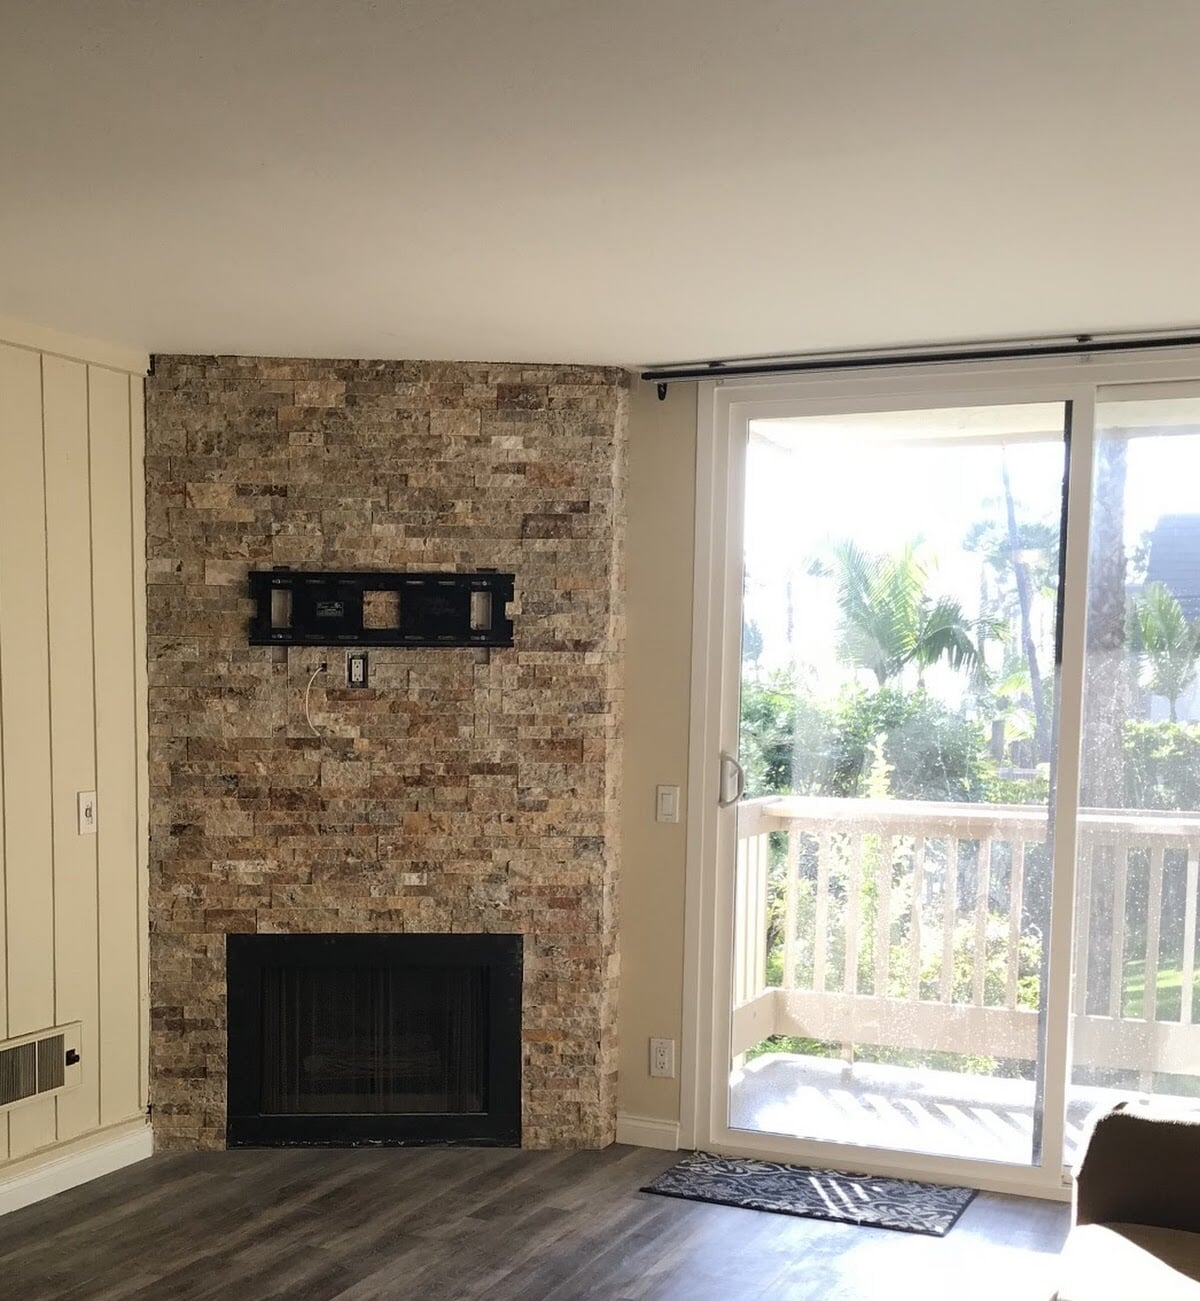 Stone fireplace installation in Carlsbad, CA from Savon Flooring